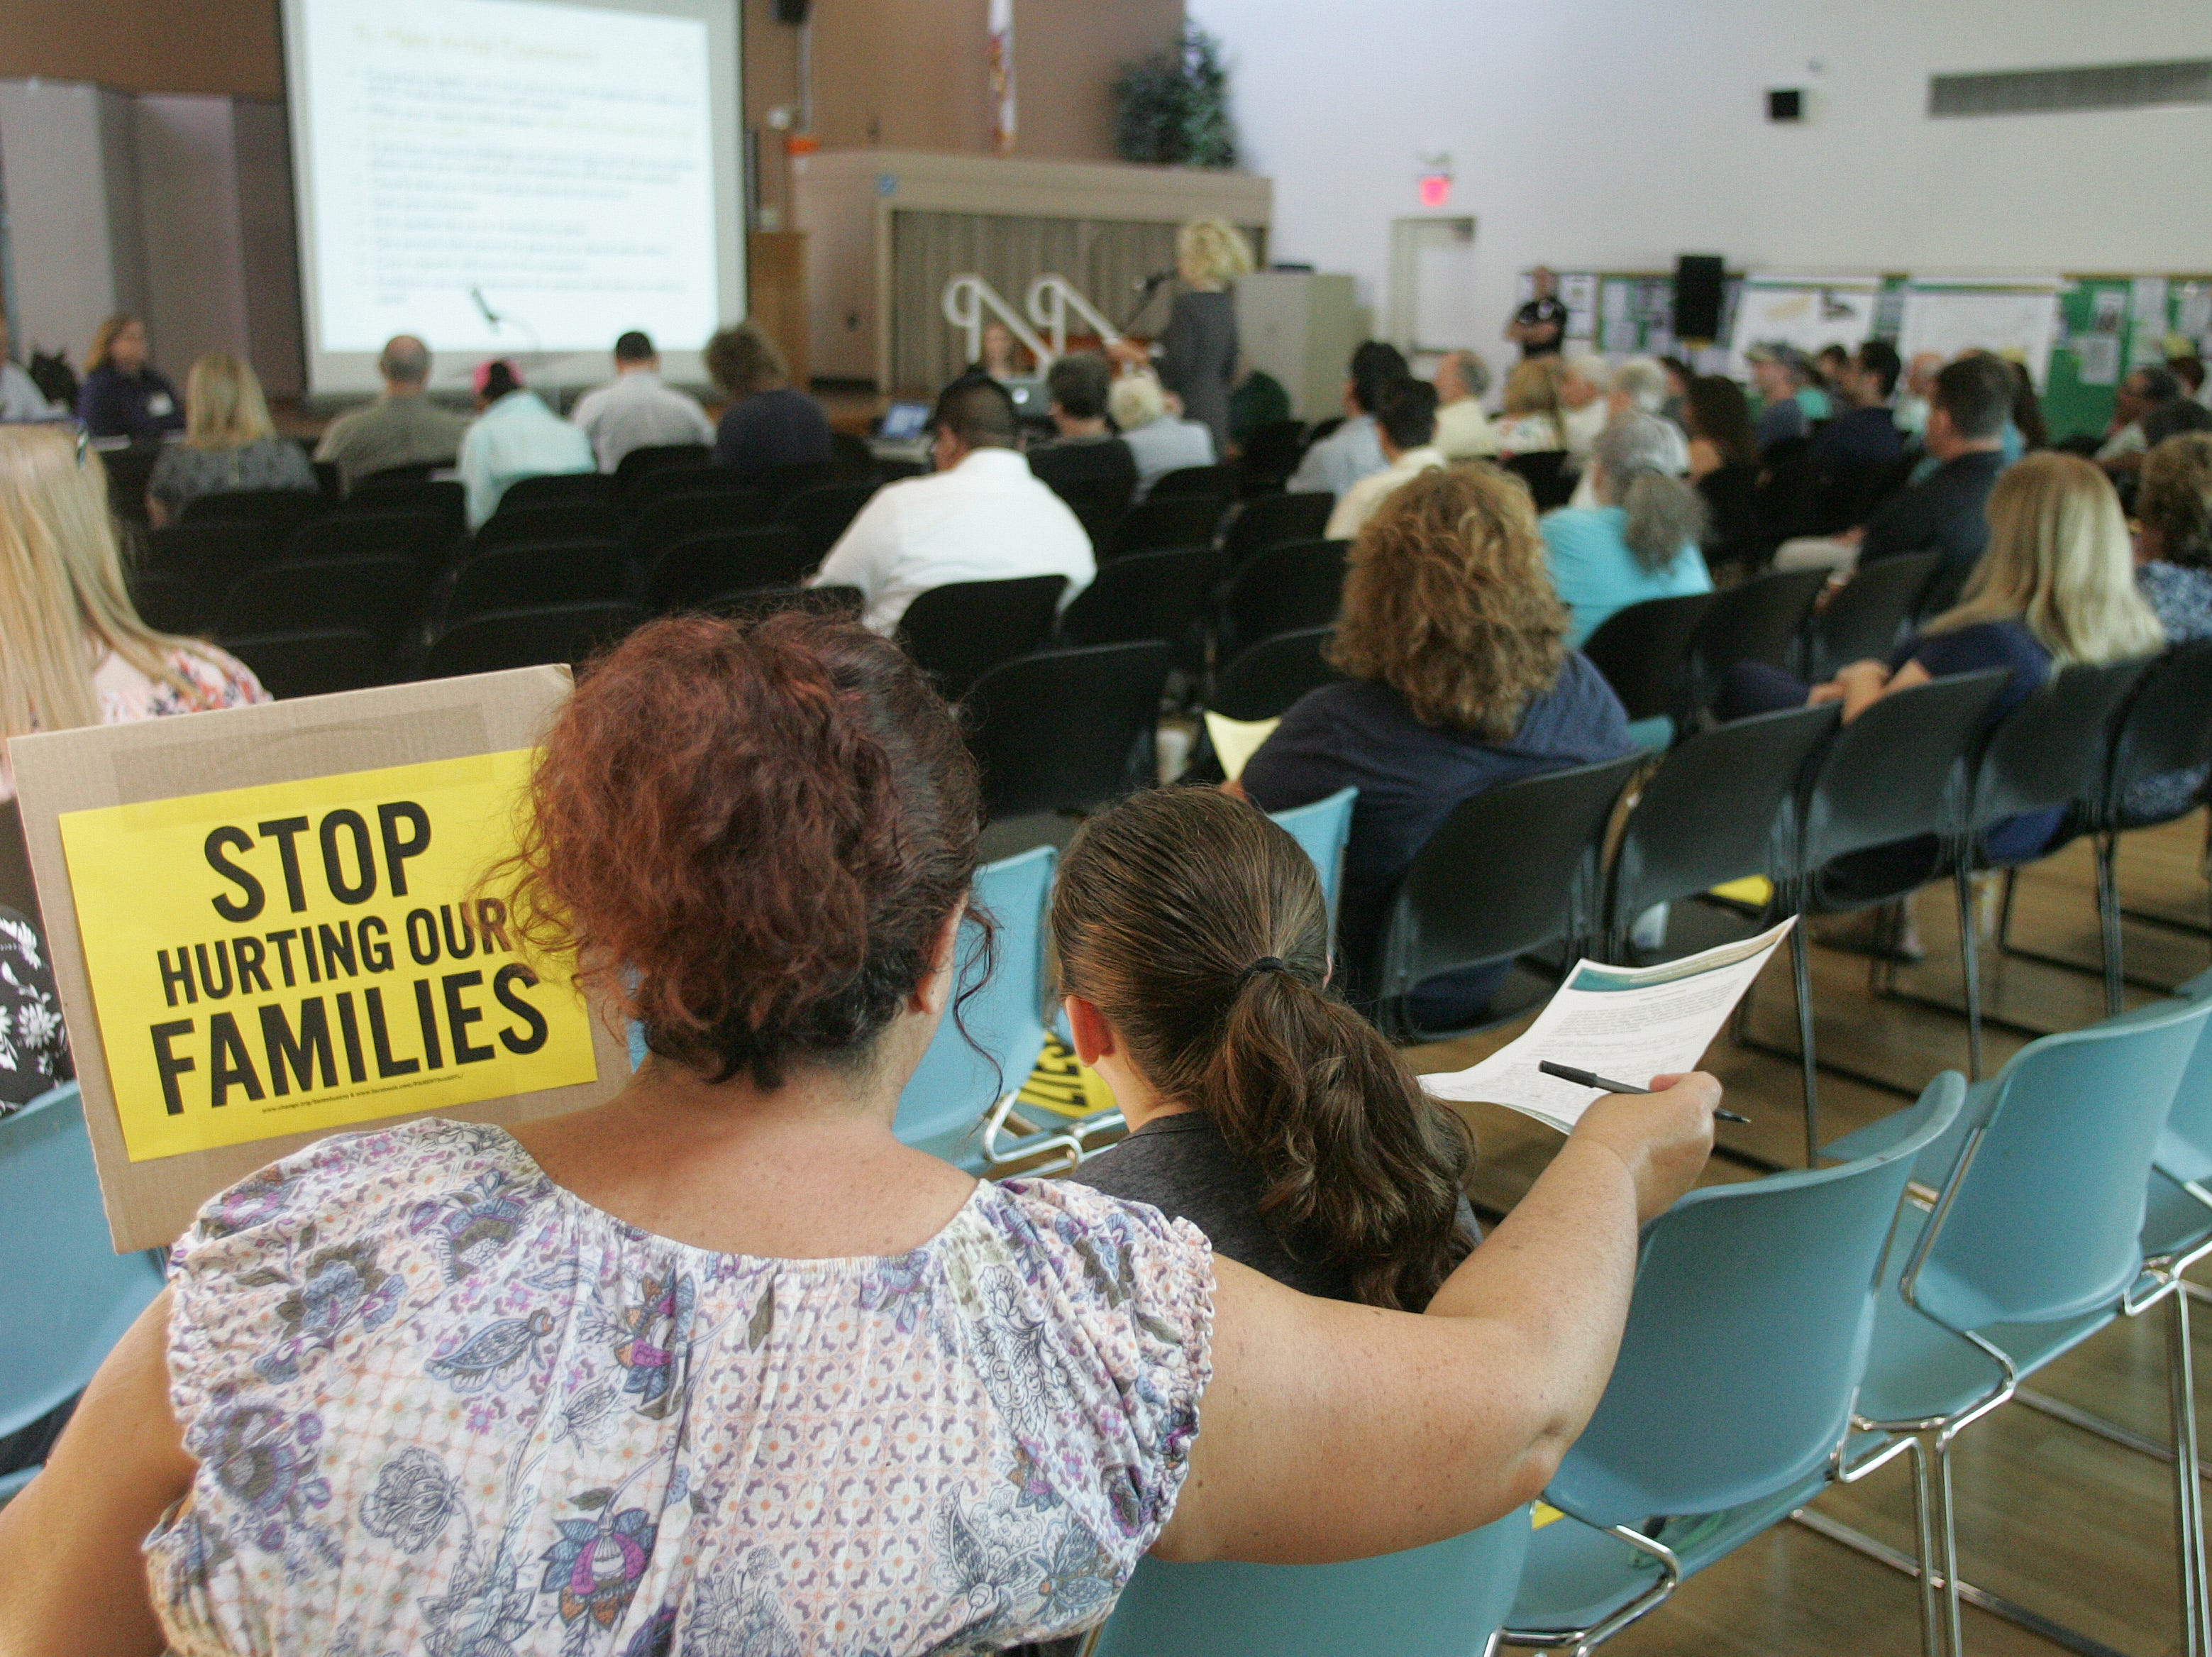 Lisa Geer and her daughter Natalie listen to the speakers while holding signs to protest the California Department of Toxic Substances Control's handling of the proposed cleanup of the Santa Susana Field Lab during a public hearing Saturday at the Simi Valley Senior Center.